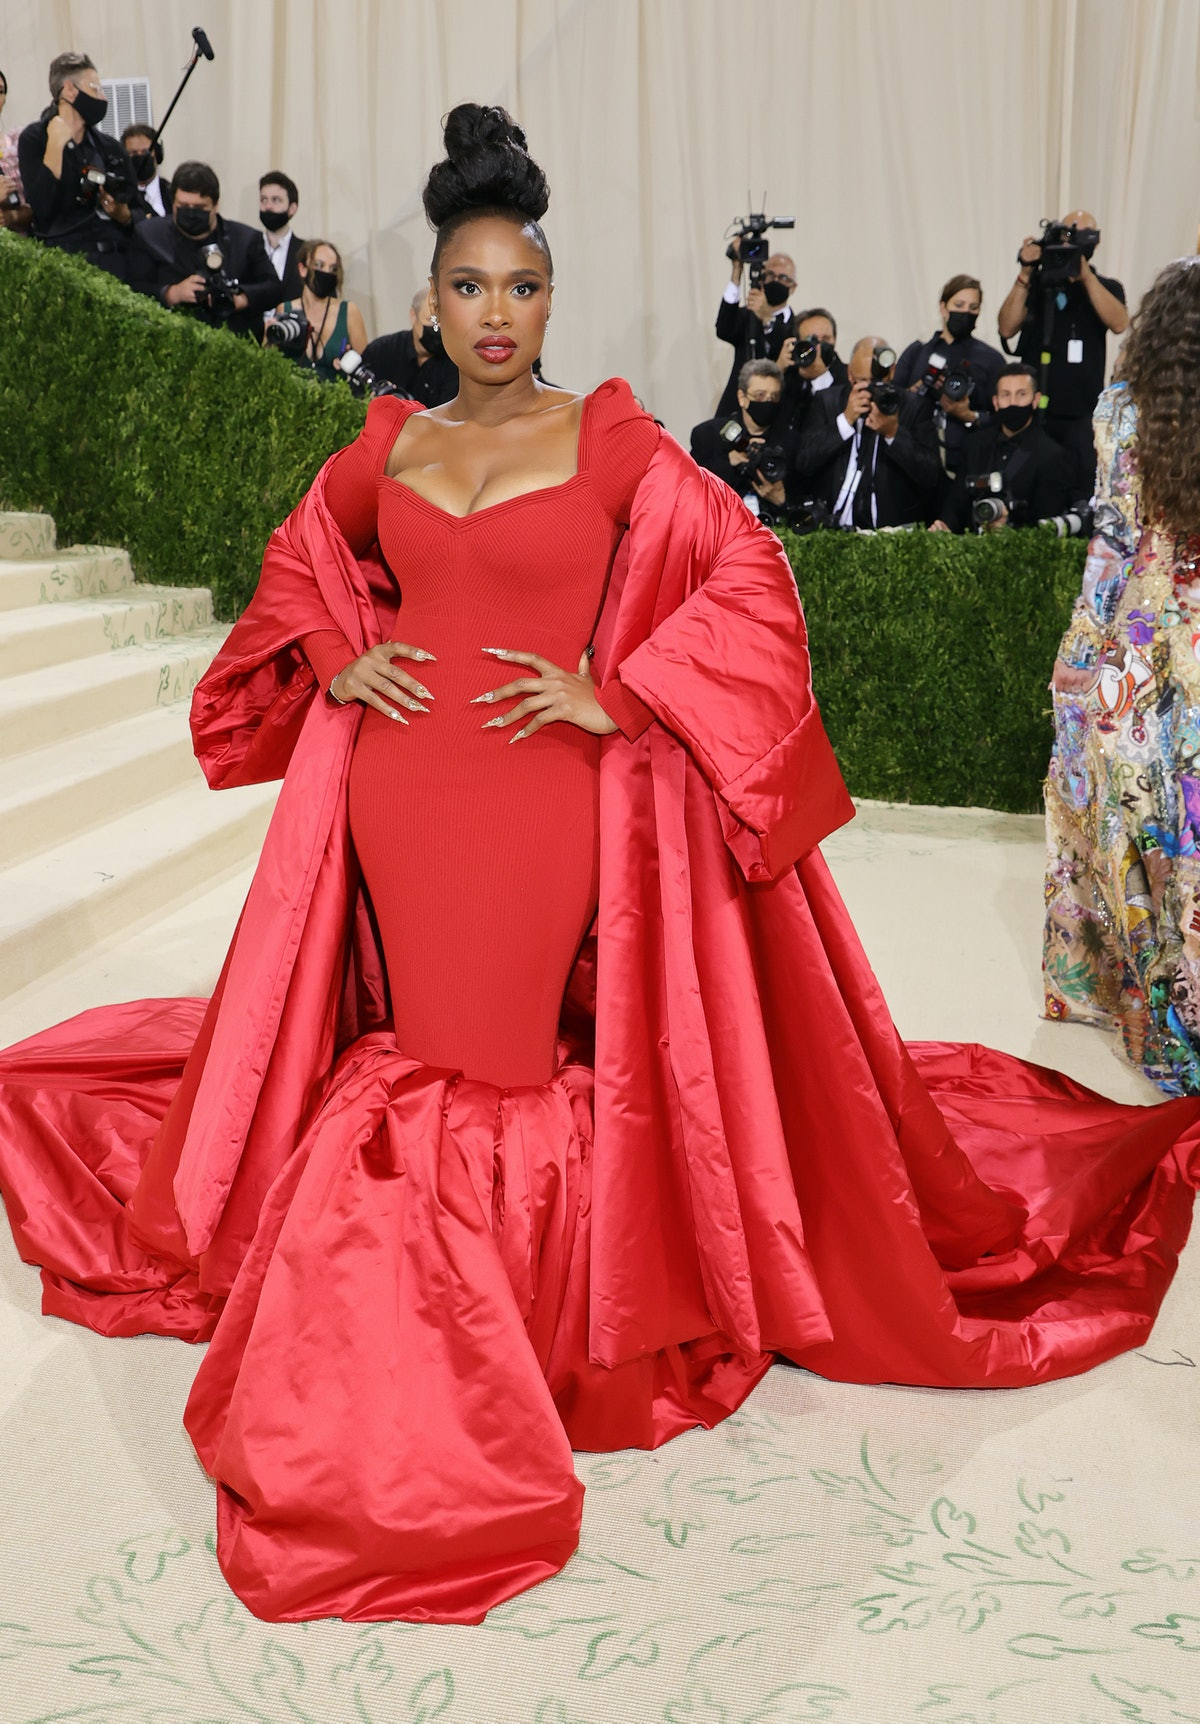 Jennifer Hudson attends The 2021 Met Gala Celebrating In America: A Lexicon Of Fashion at Metropolit...